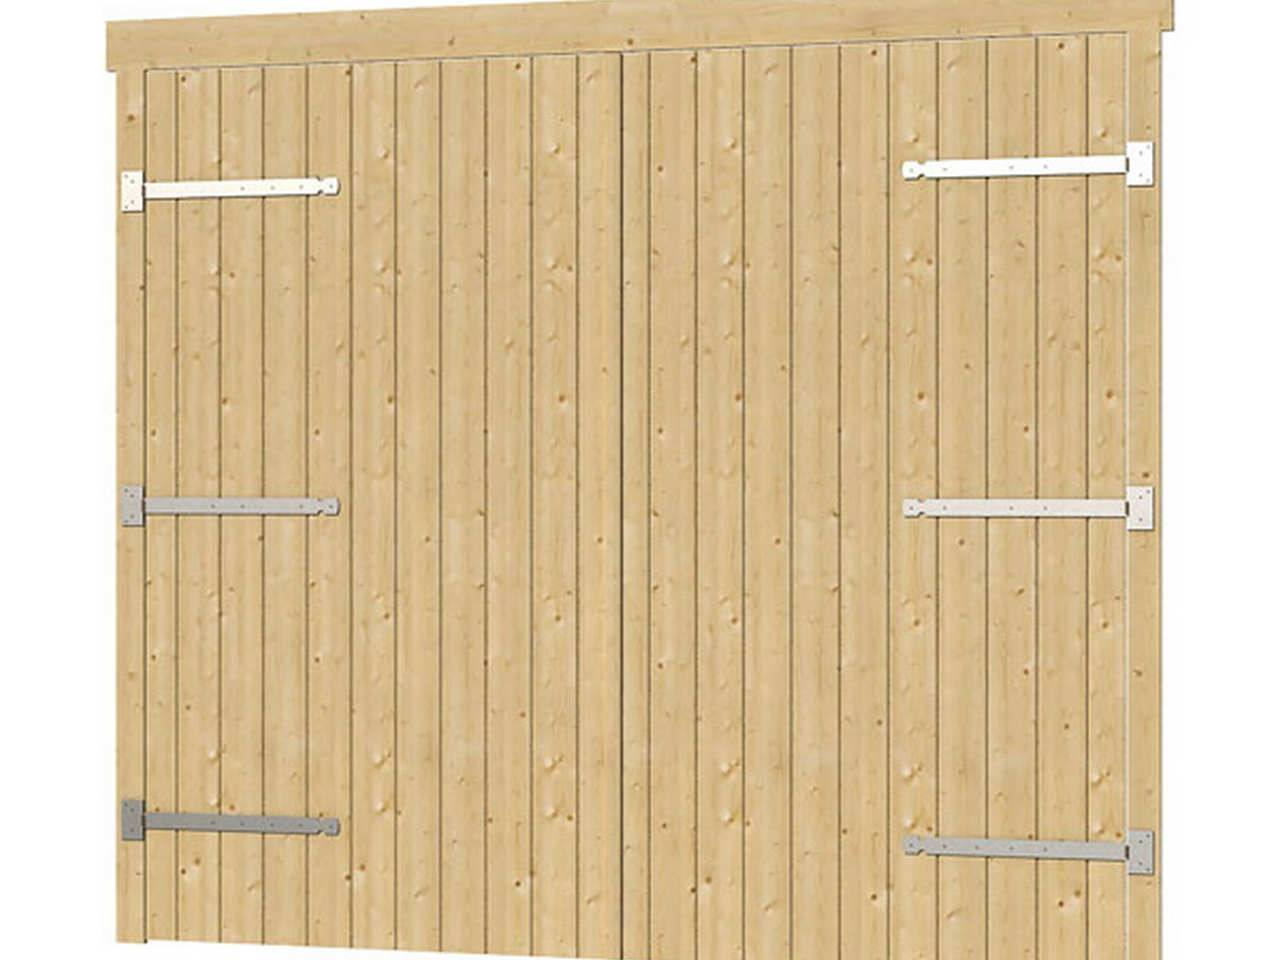 44 mm holzgarage falkland 595 x 595 lasita maja holz gartenhaus blockhaus ebay. Black Bedroom Furniture Sets. Home Design Ideas